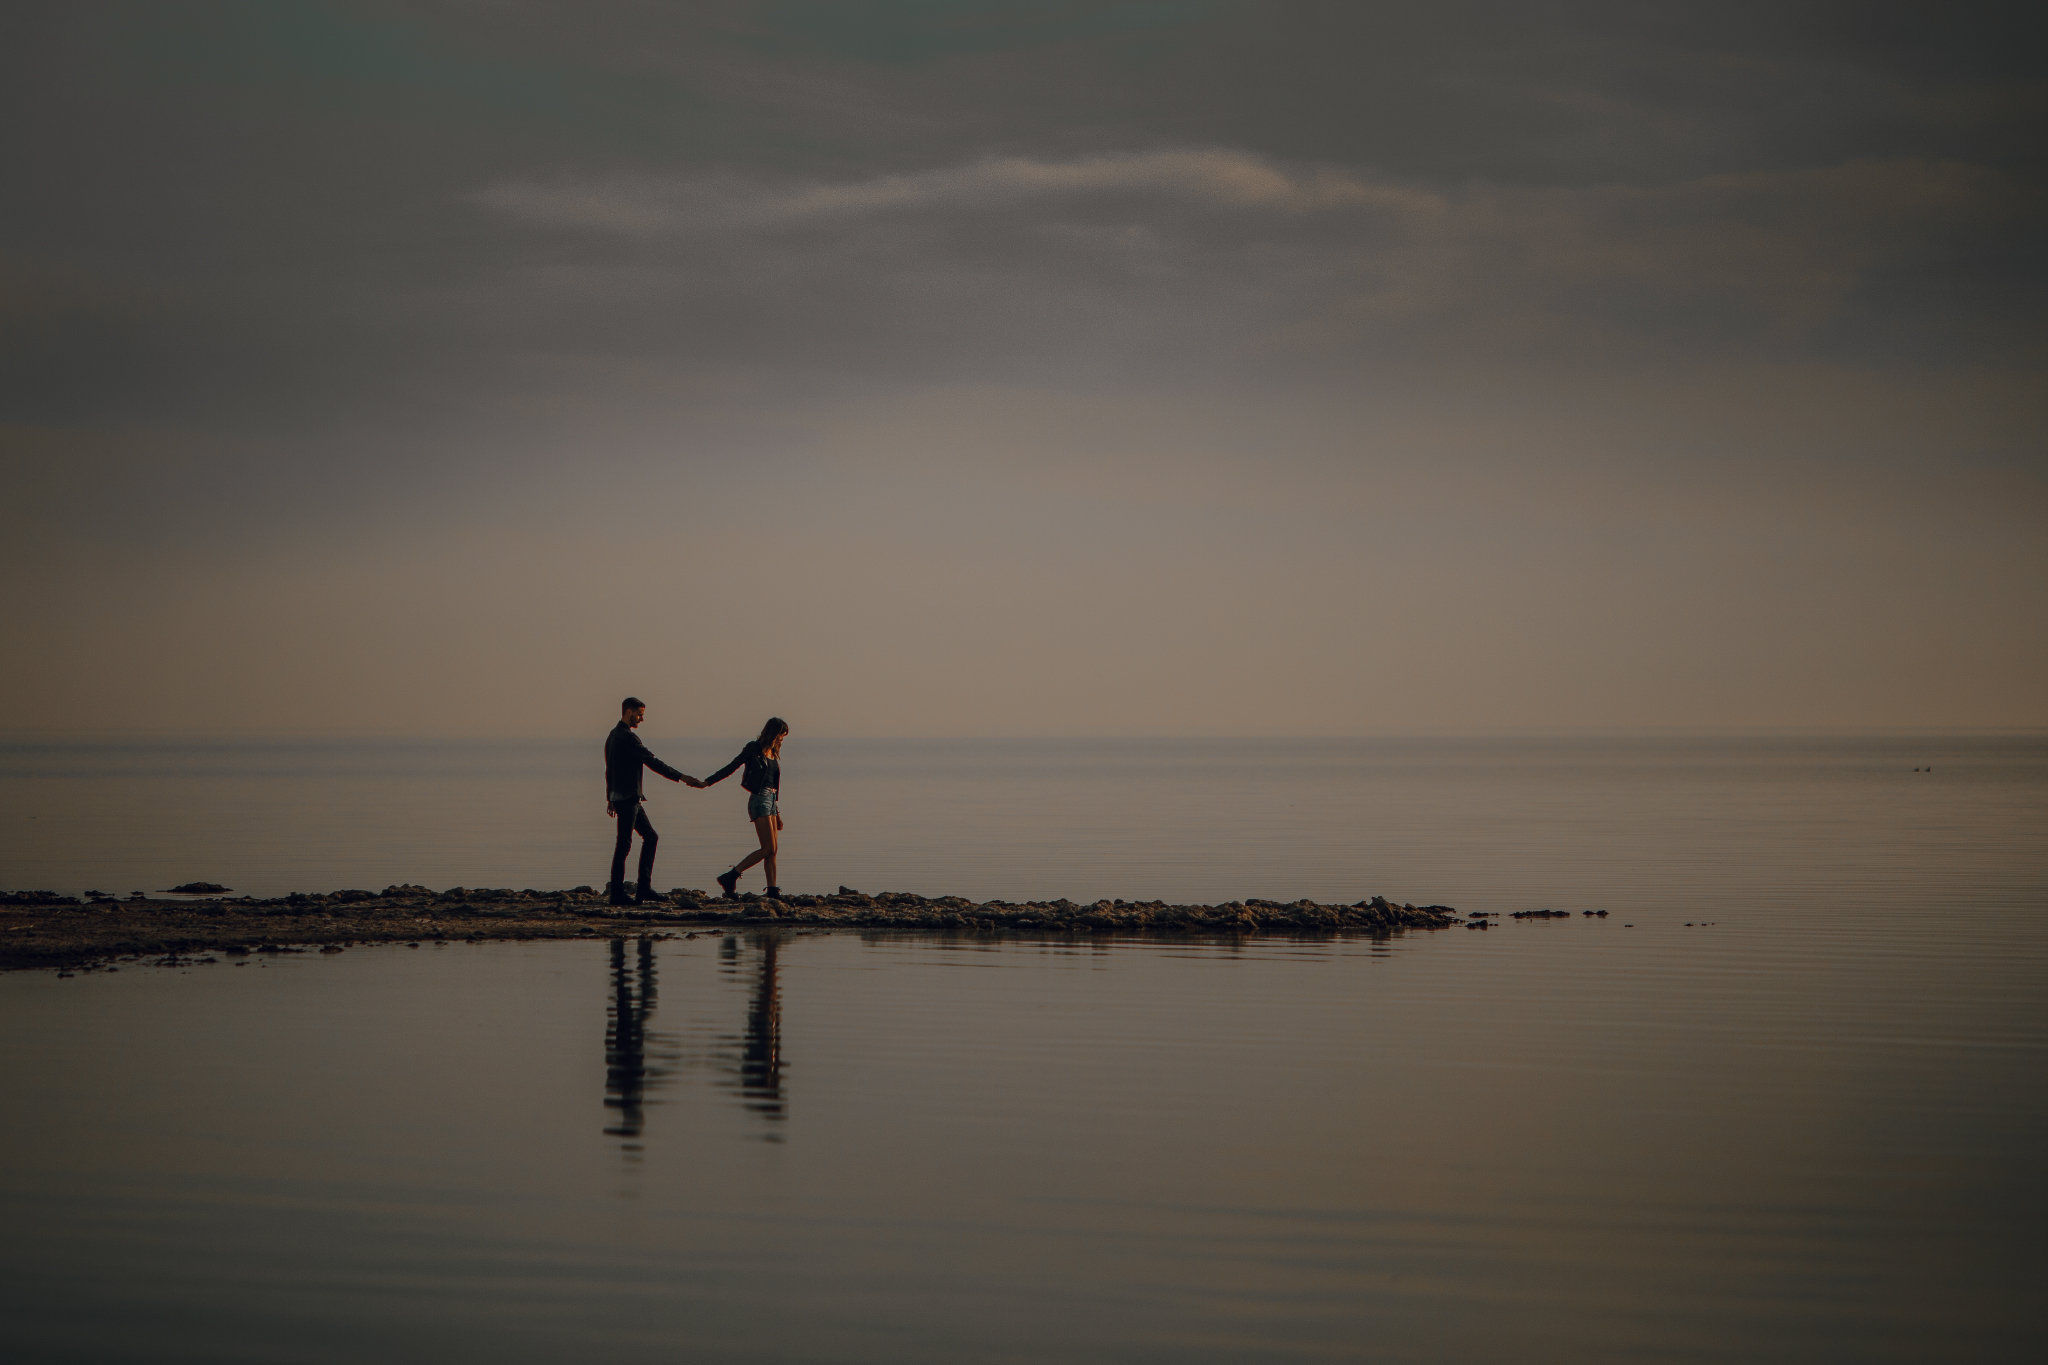 san diego wedding   photographer | woman leading man's way by holding his hand on lake